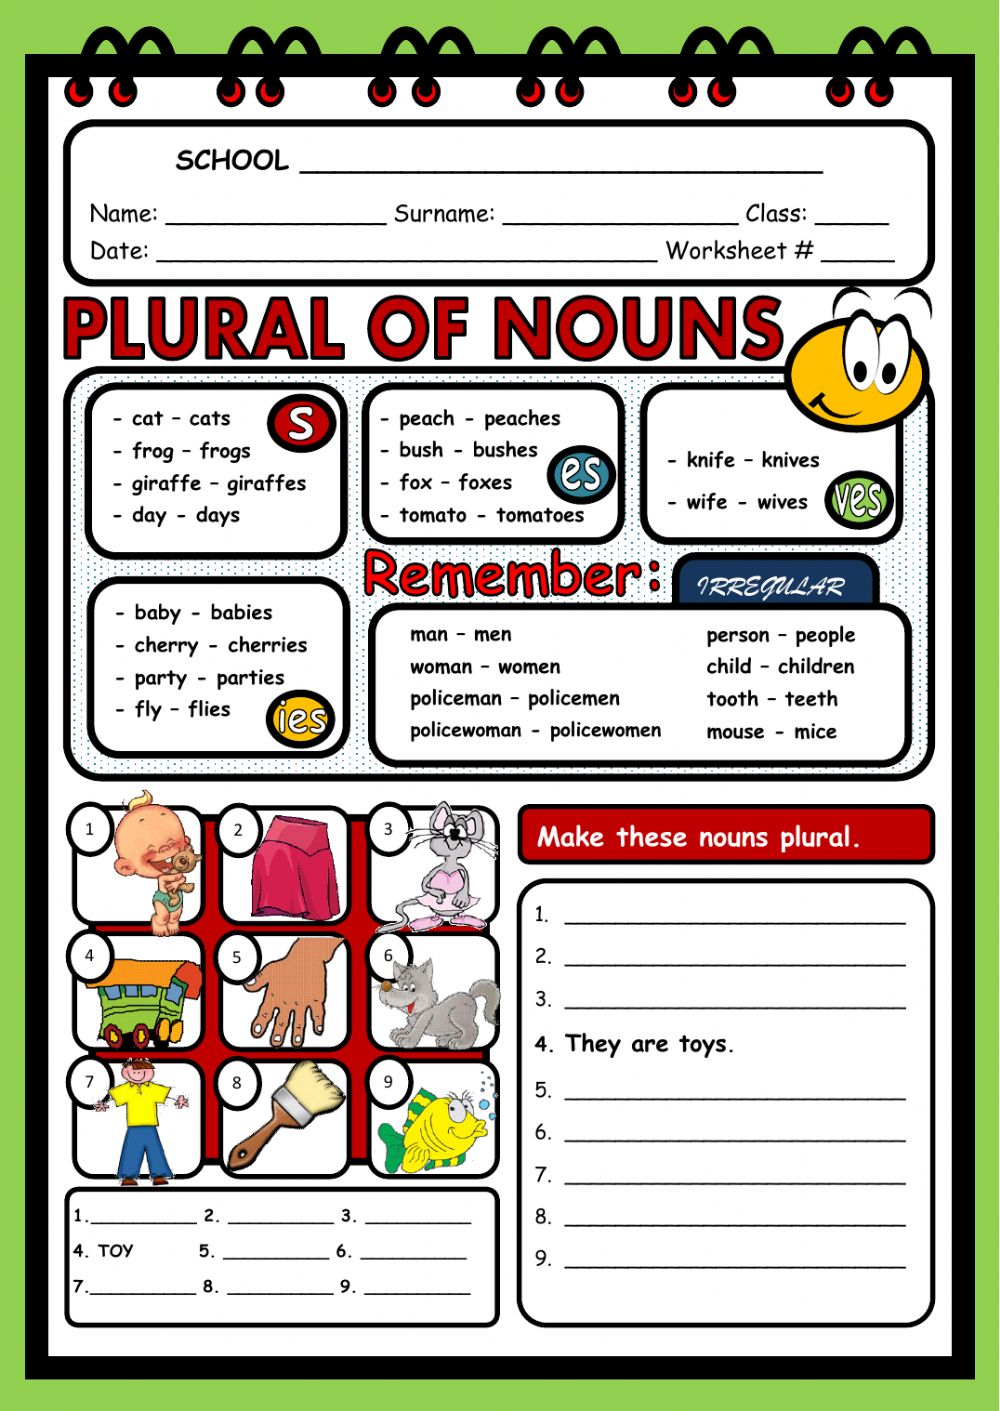 Is light a noun plural of nouns interactive worksheet for Plural of floor